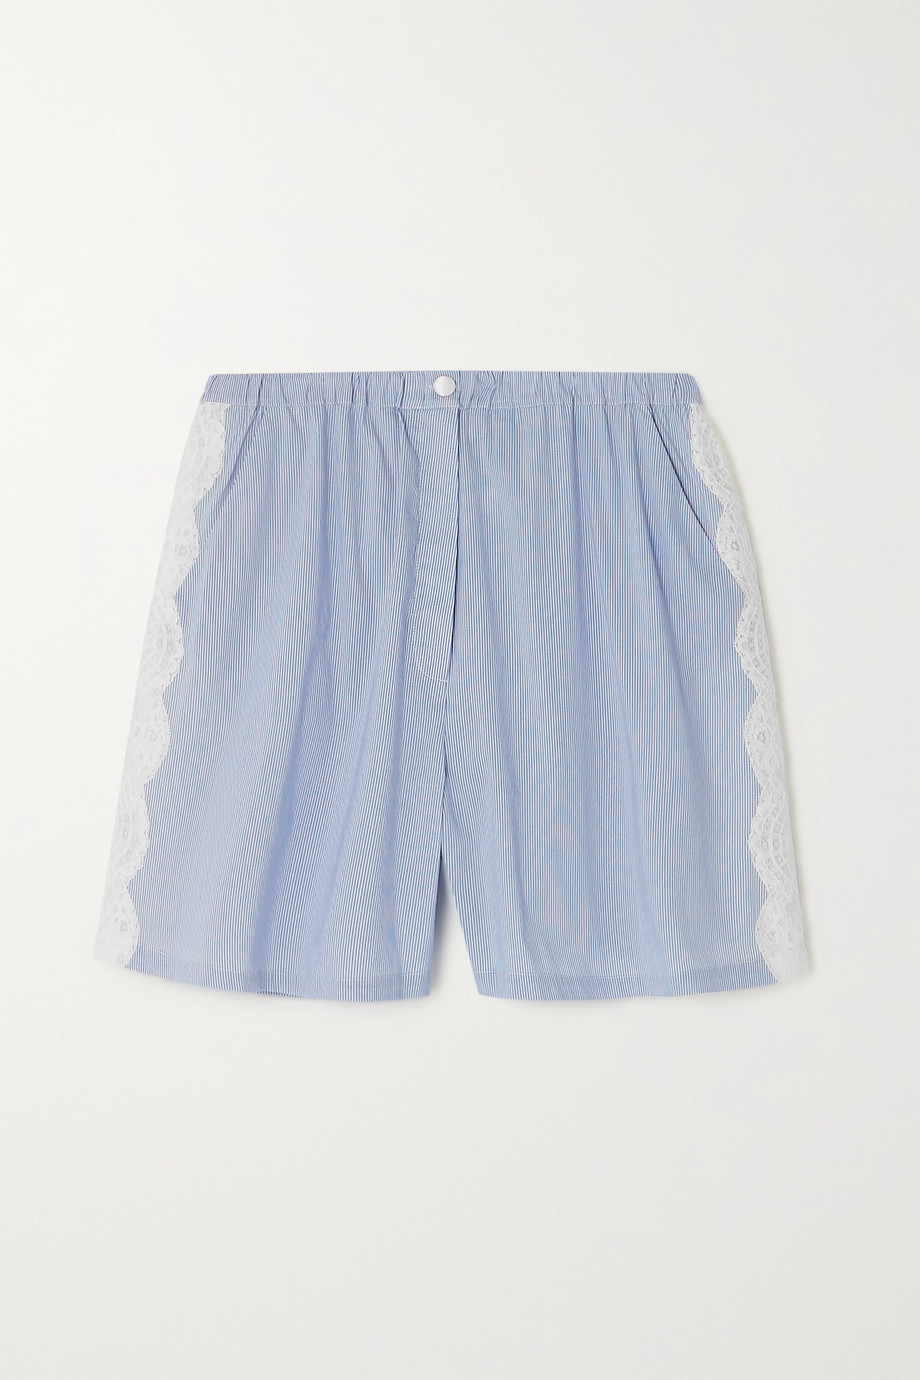 I.D. SARRIERI He's Mine lace-paneled striped cotton-blend pajama shorts